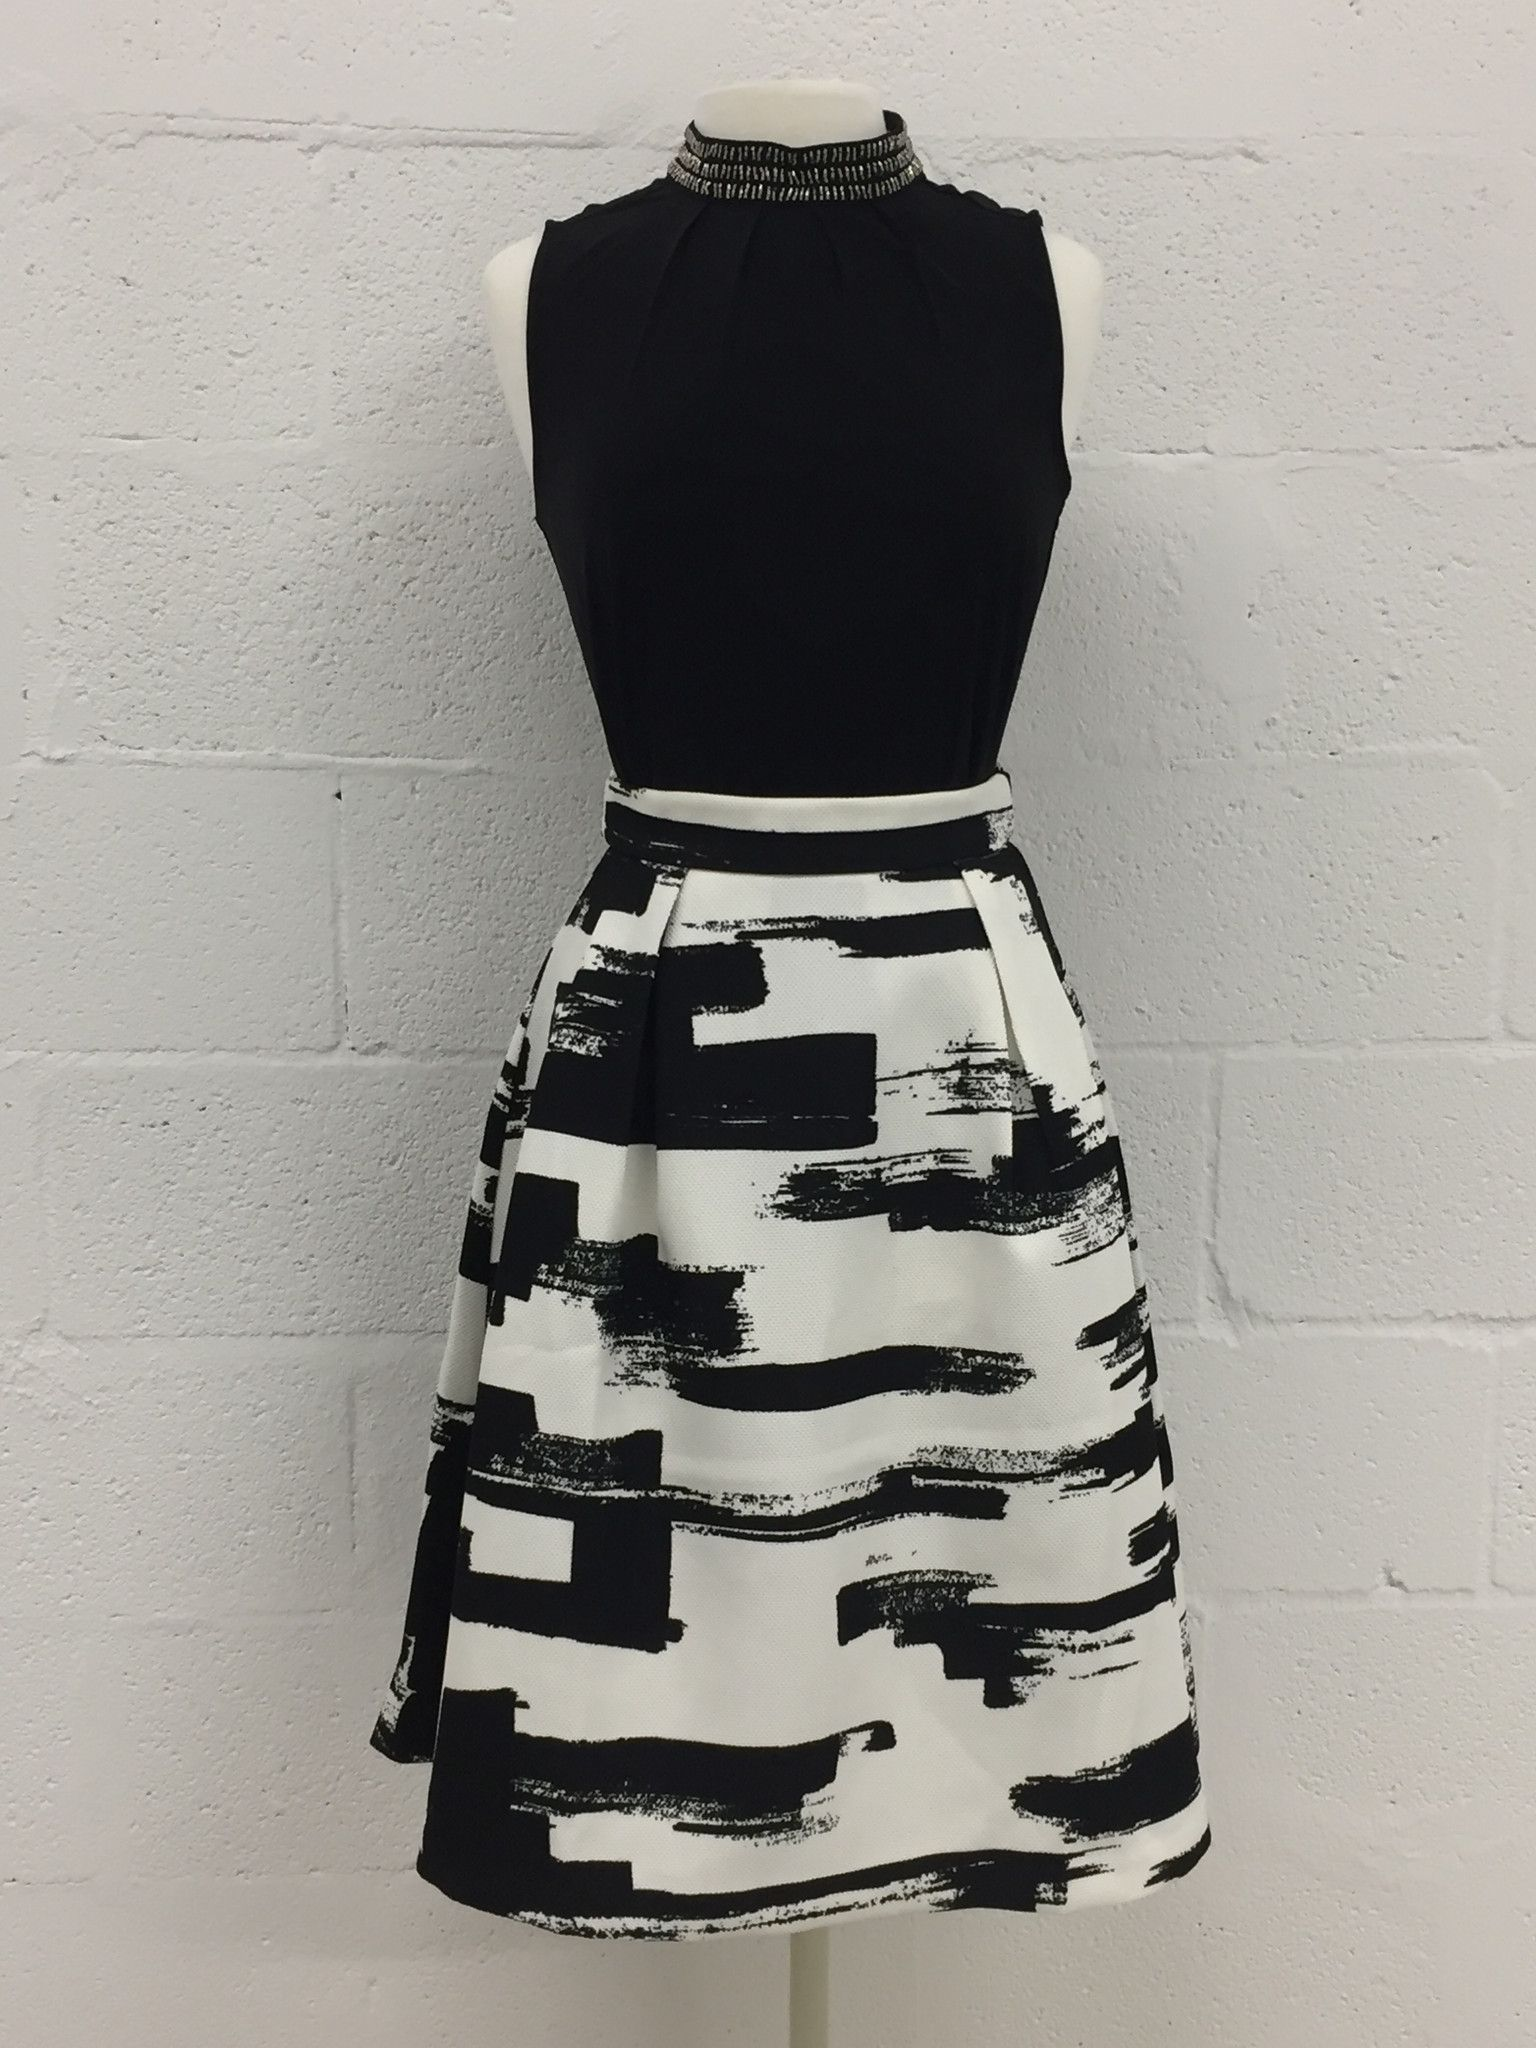 A White And Black Abstract Pattern Woven Skirt Feels Artsy Yet